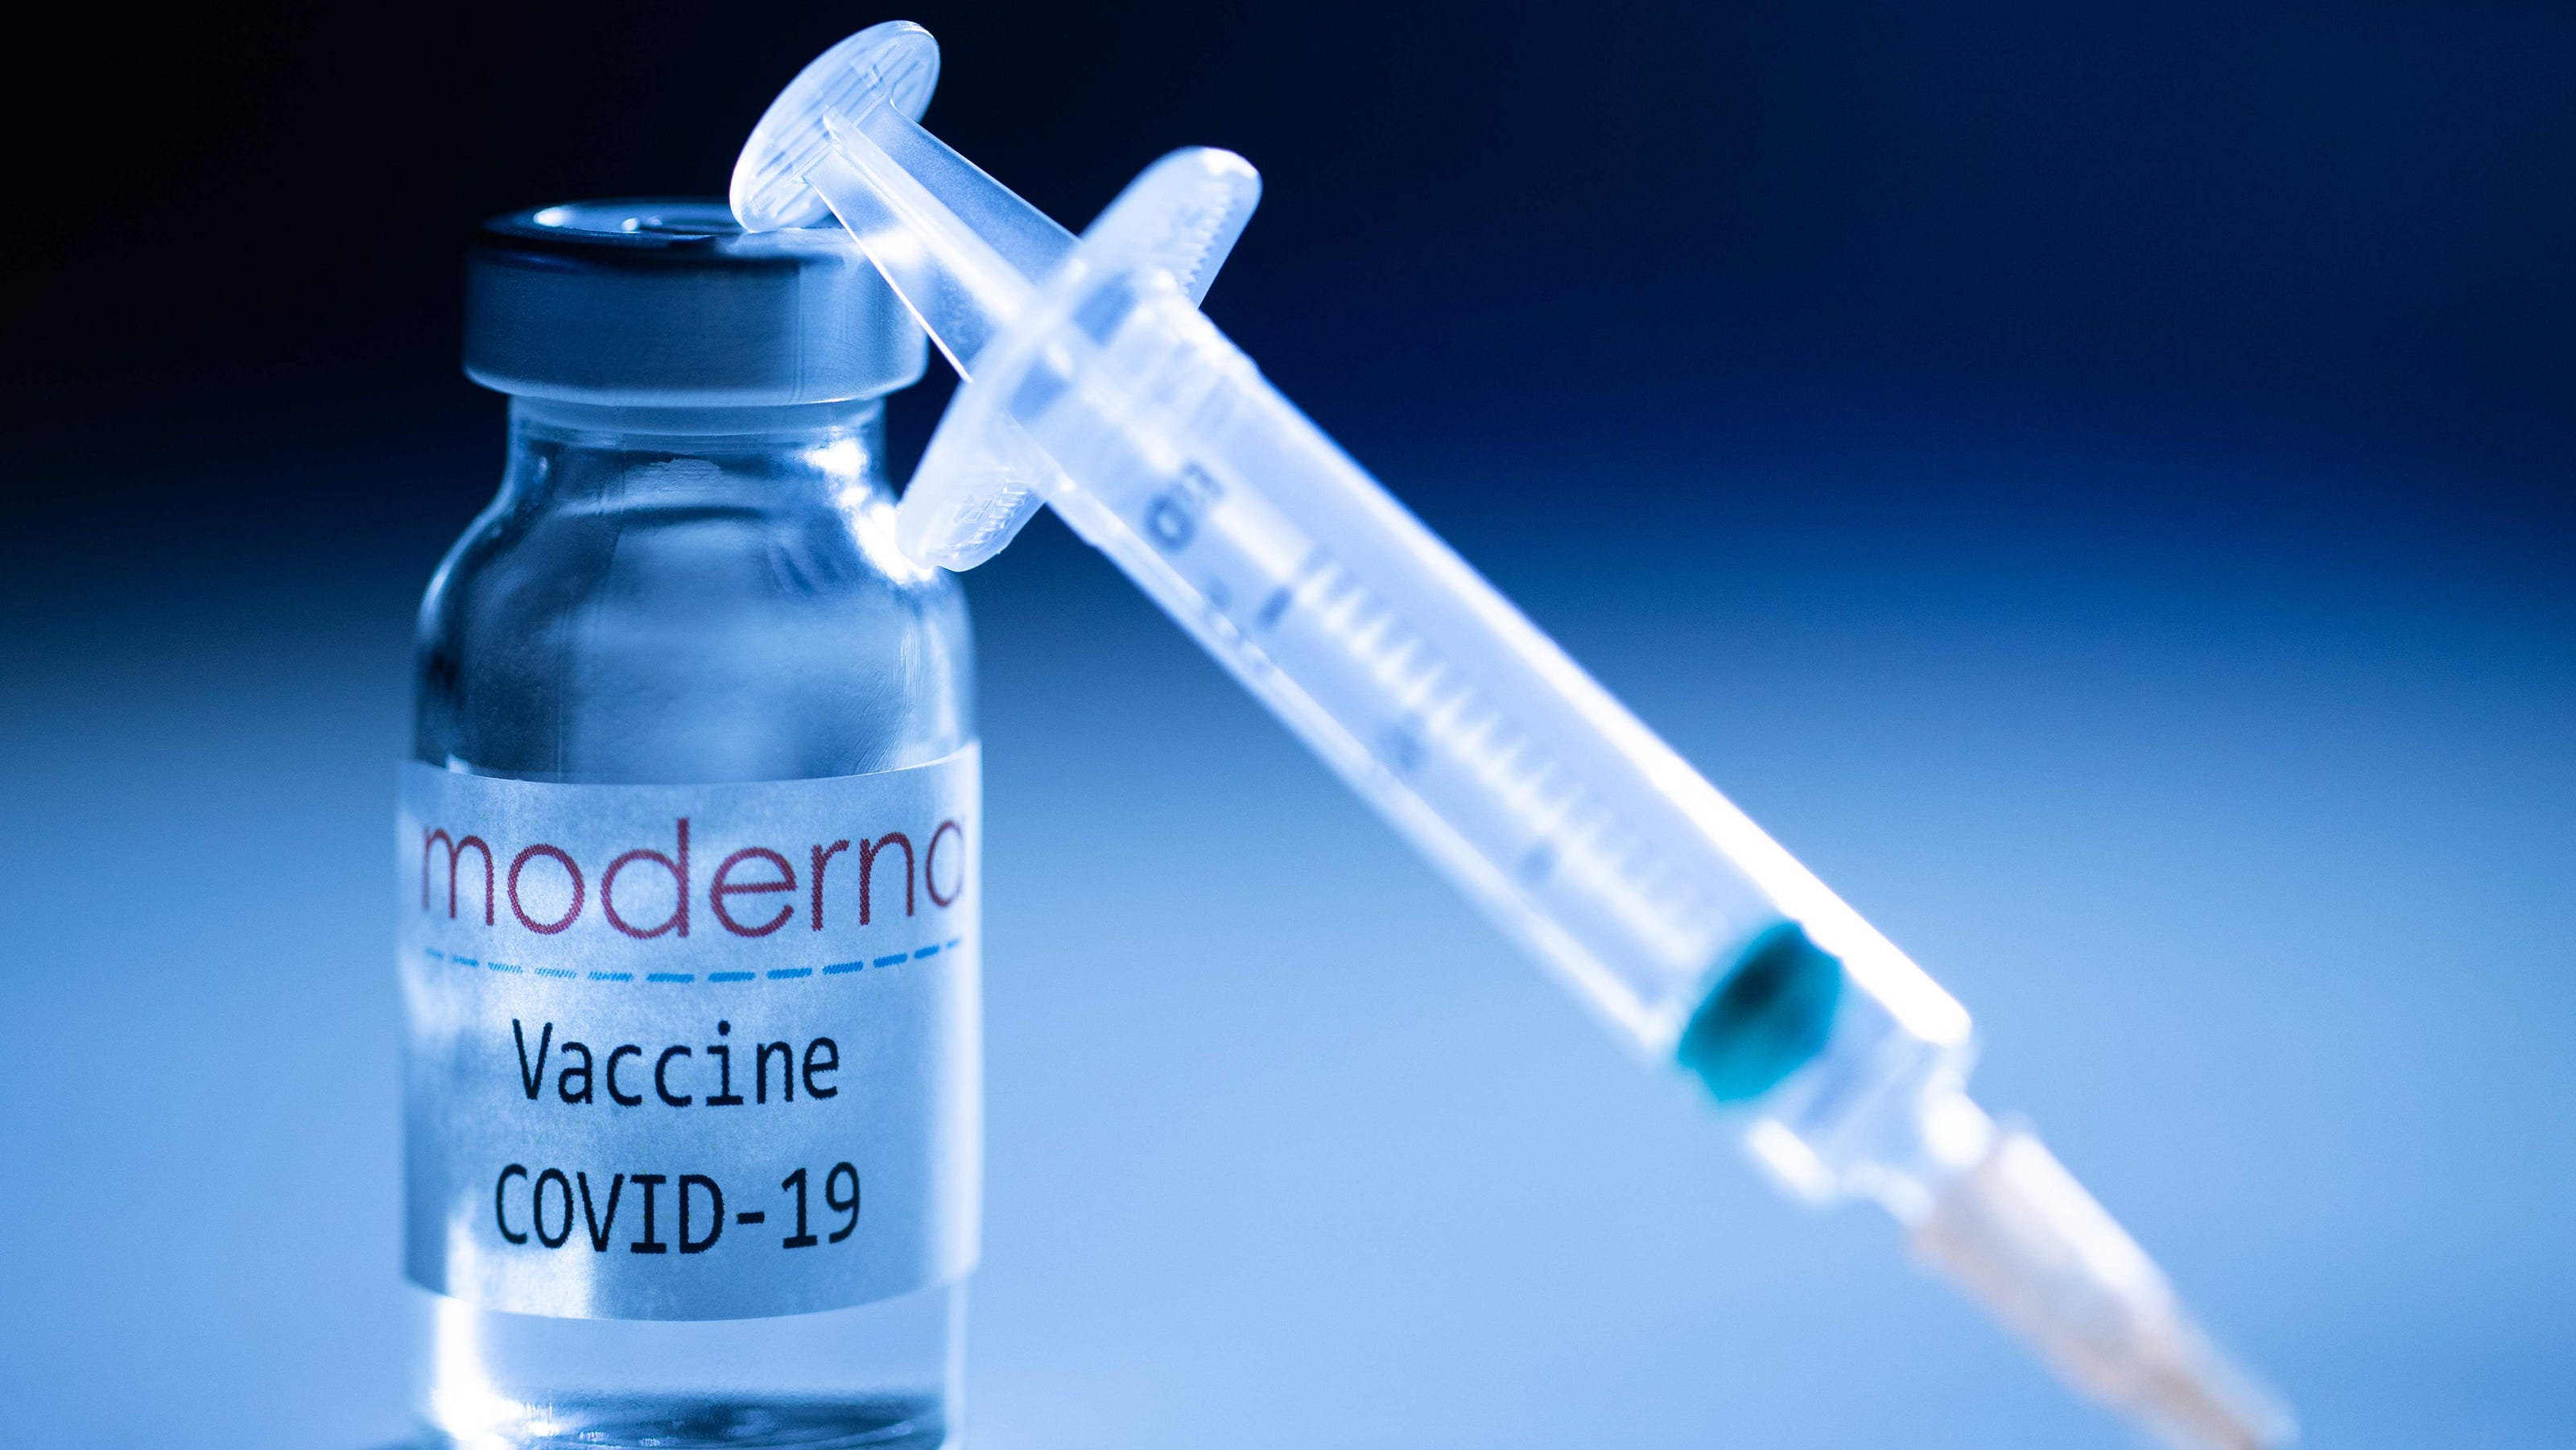 Moderna Covid 19 Vaccine Goes Before Fda Committee For Final Review